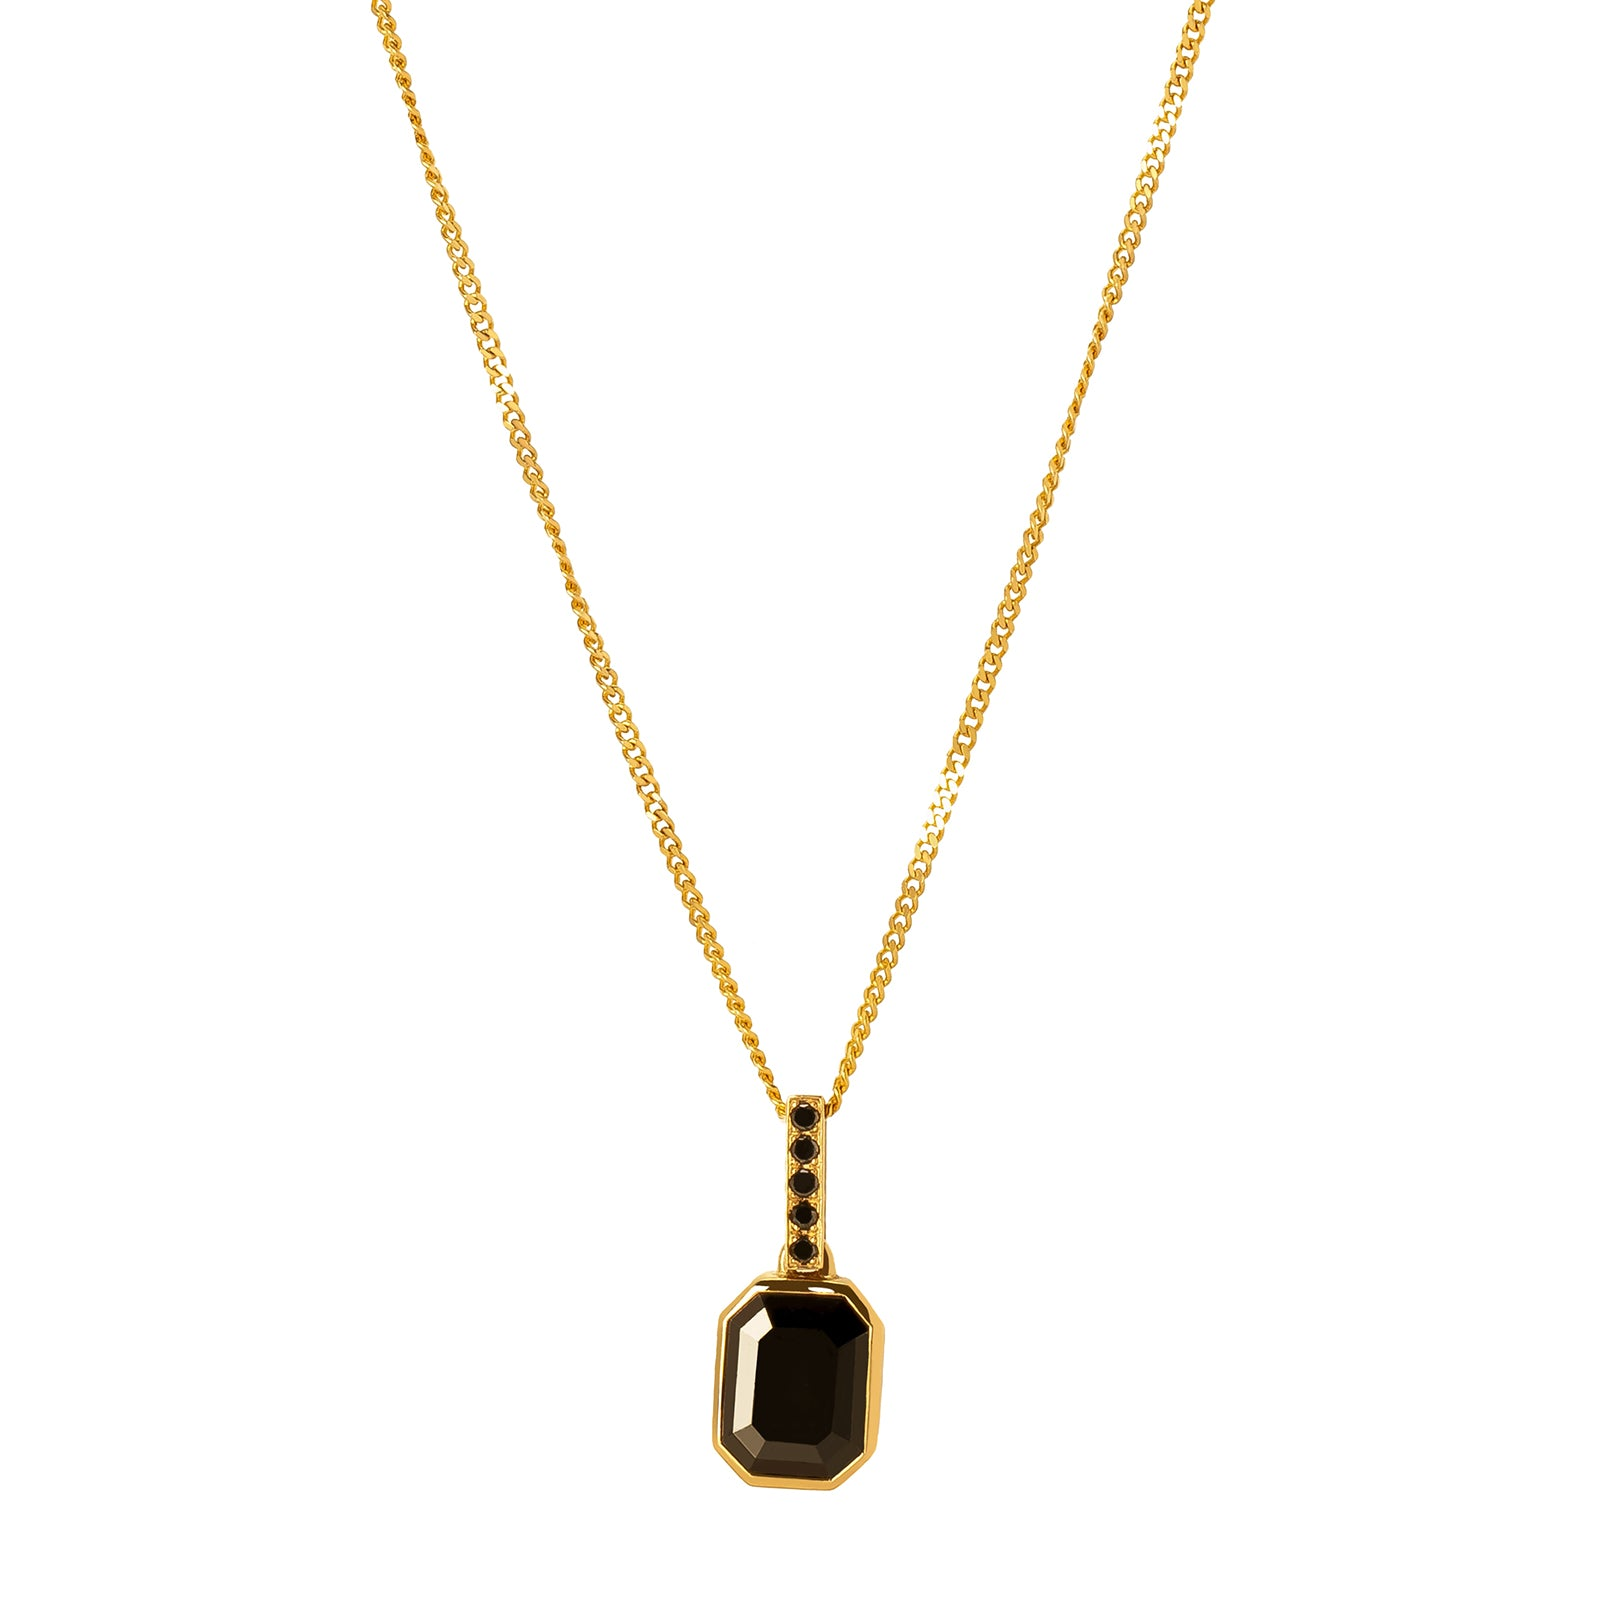 YI Collection Black Diamond Pendant Necklace - Necklaces - Broken English Jewelry